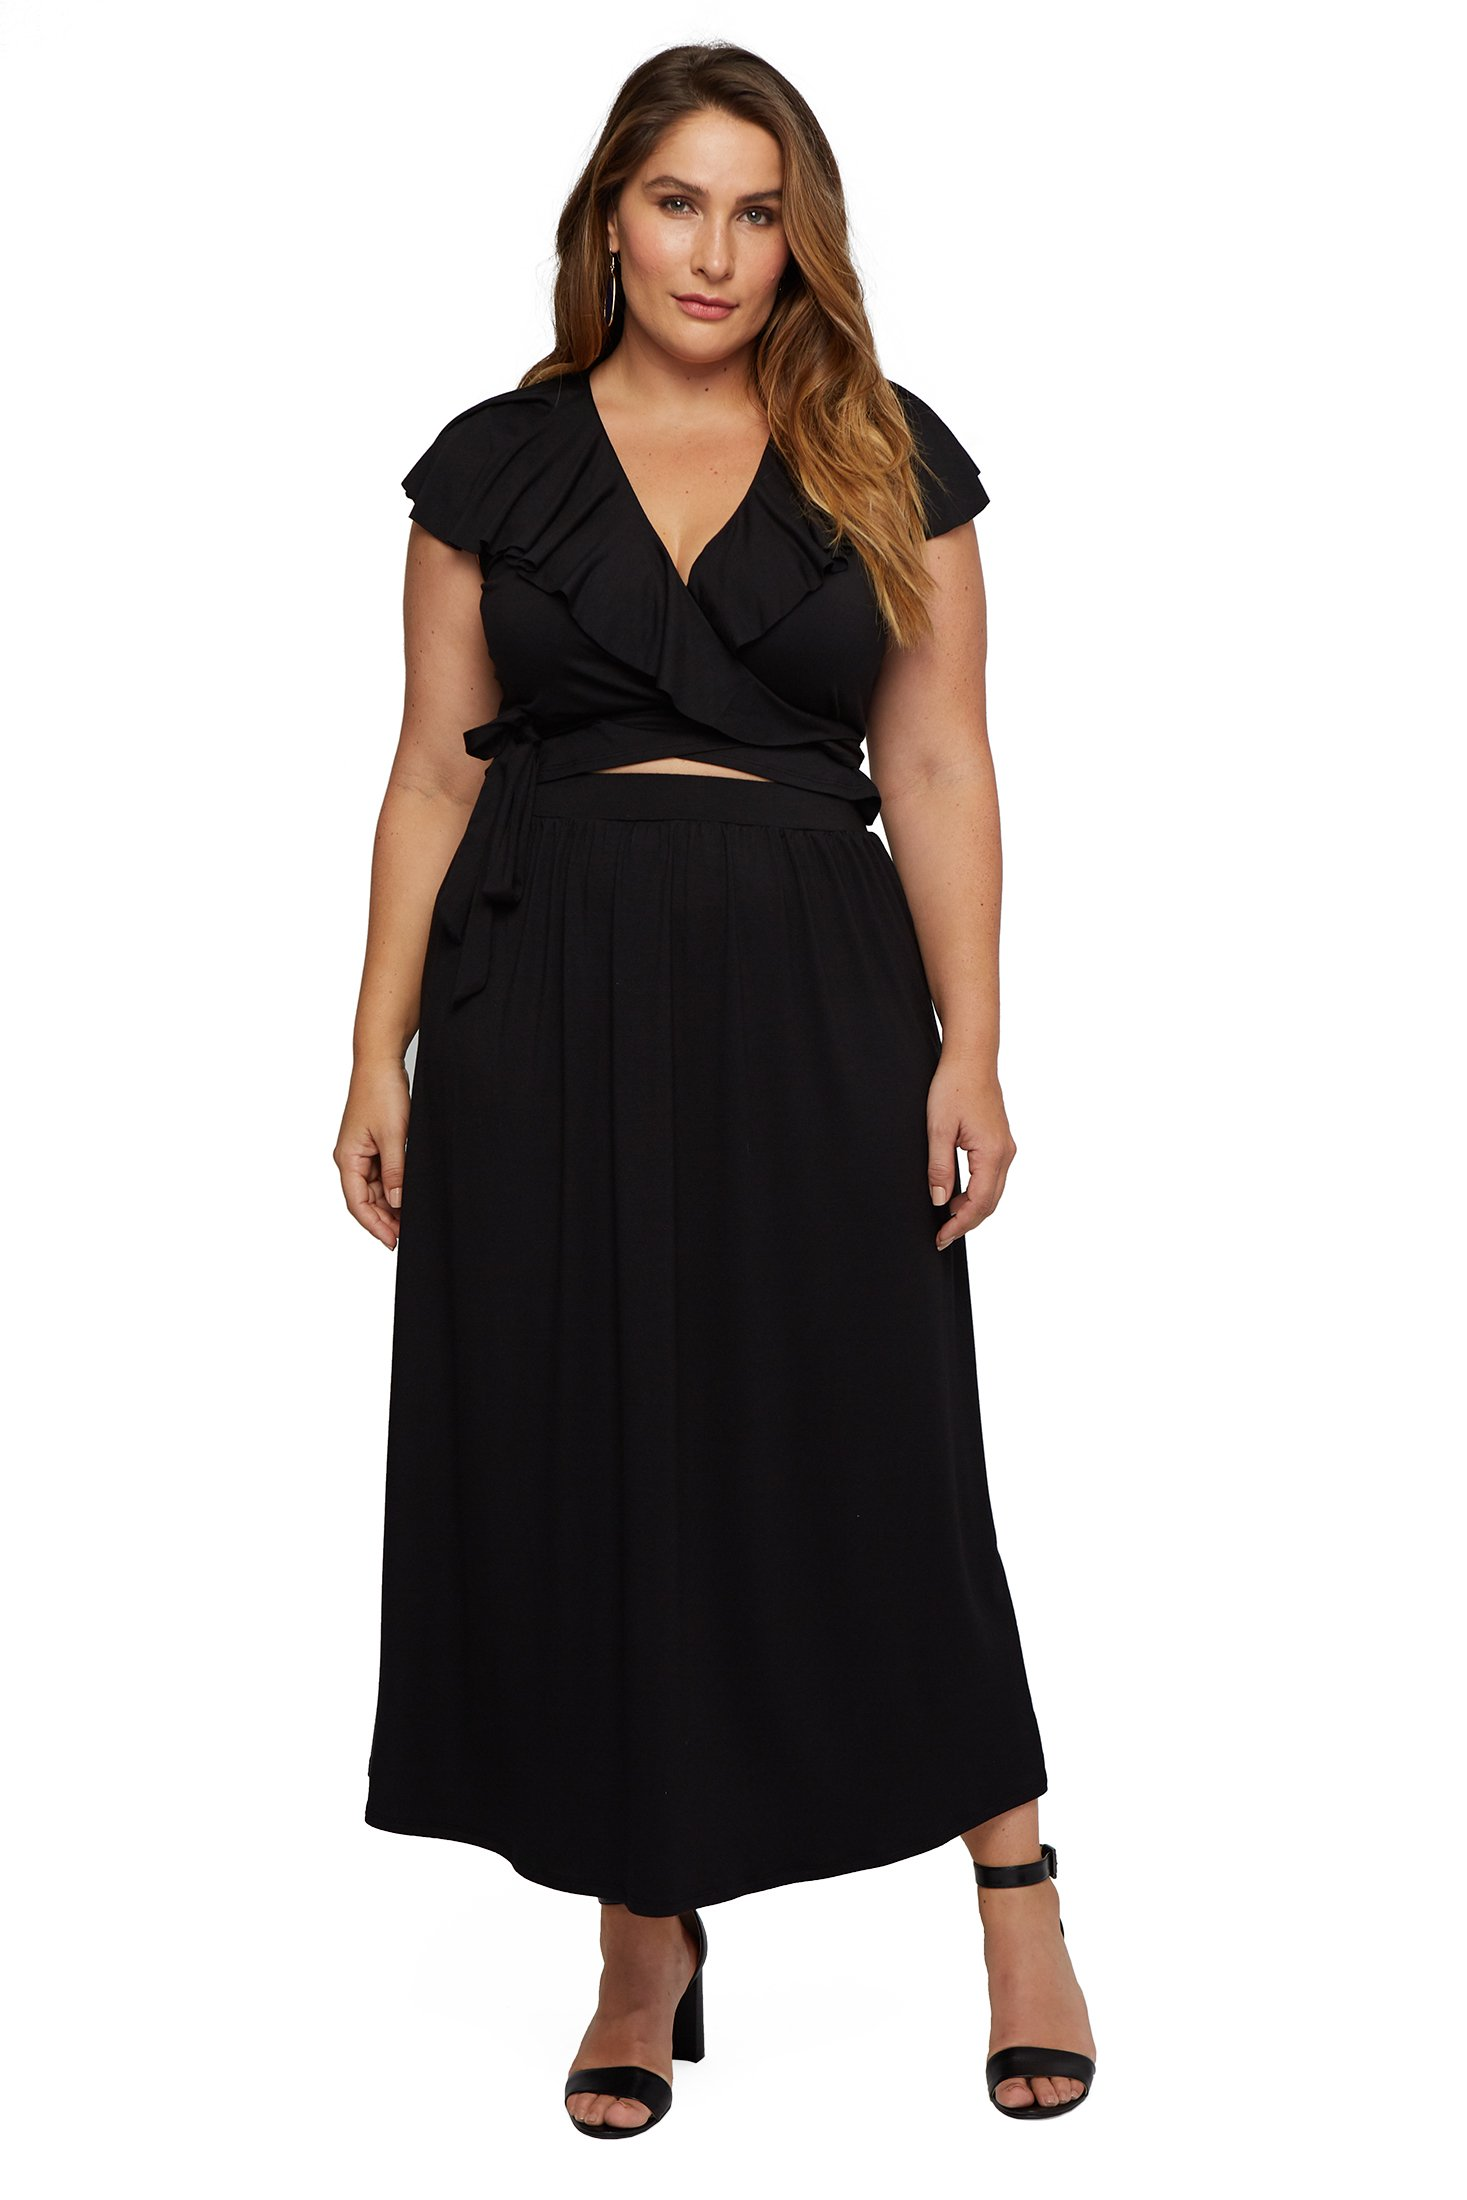 rachel pally's plus size resort collection